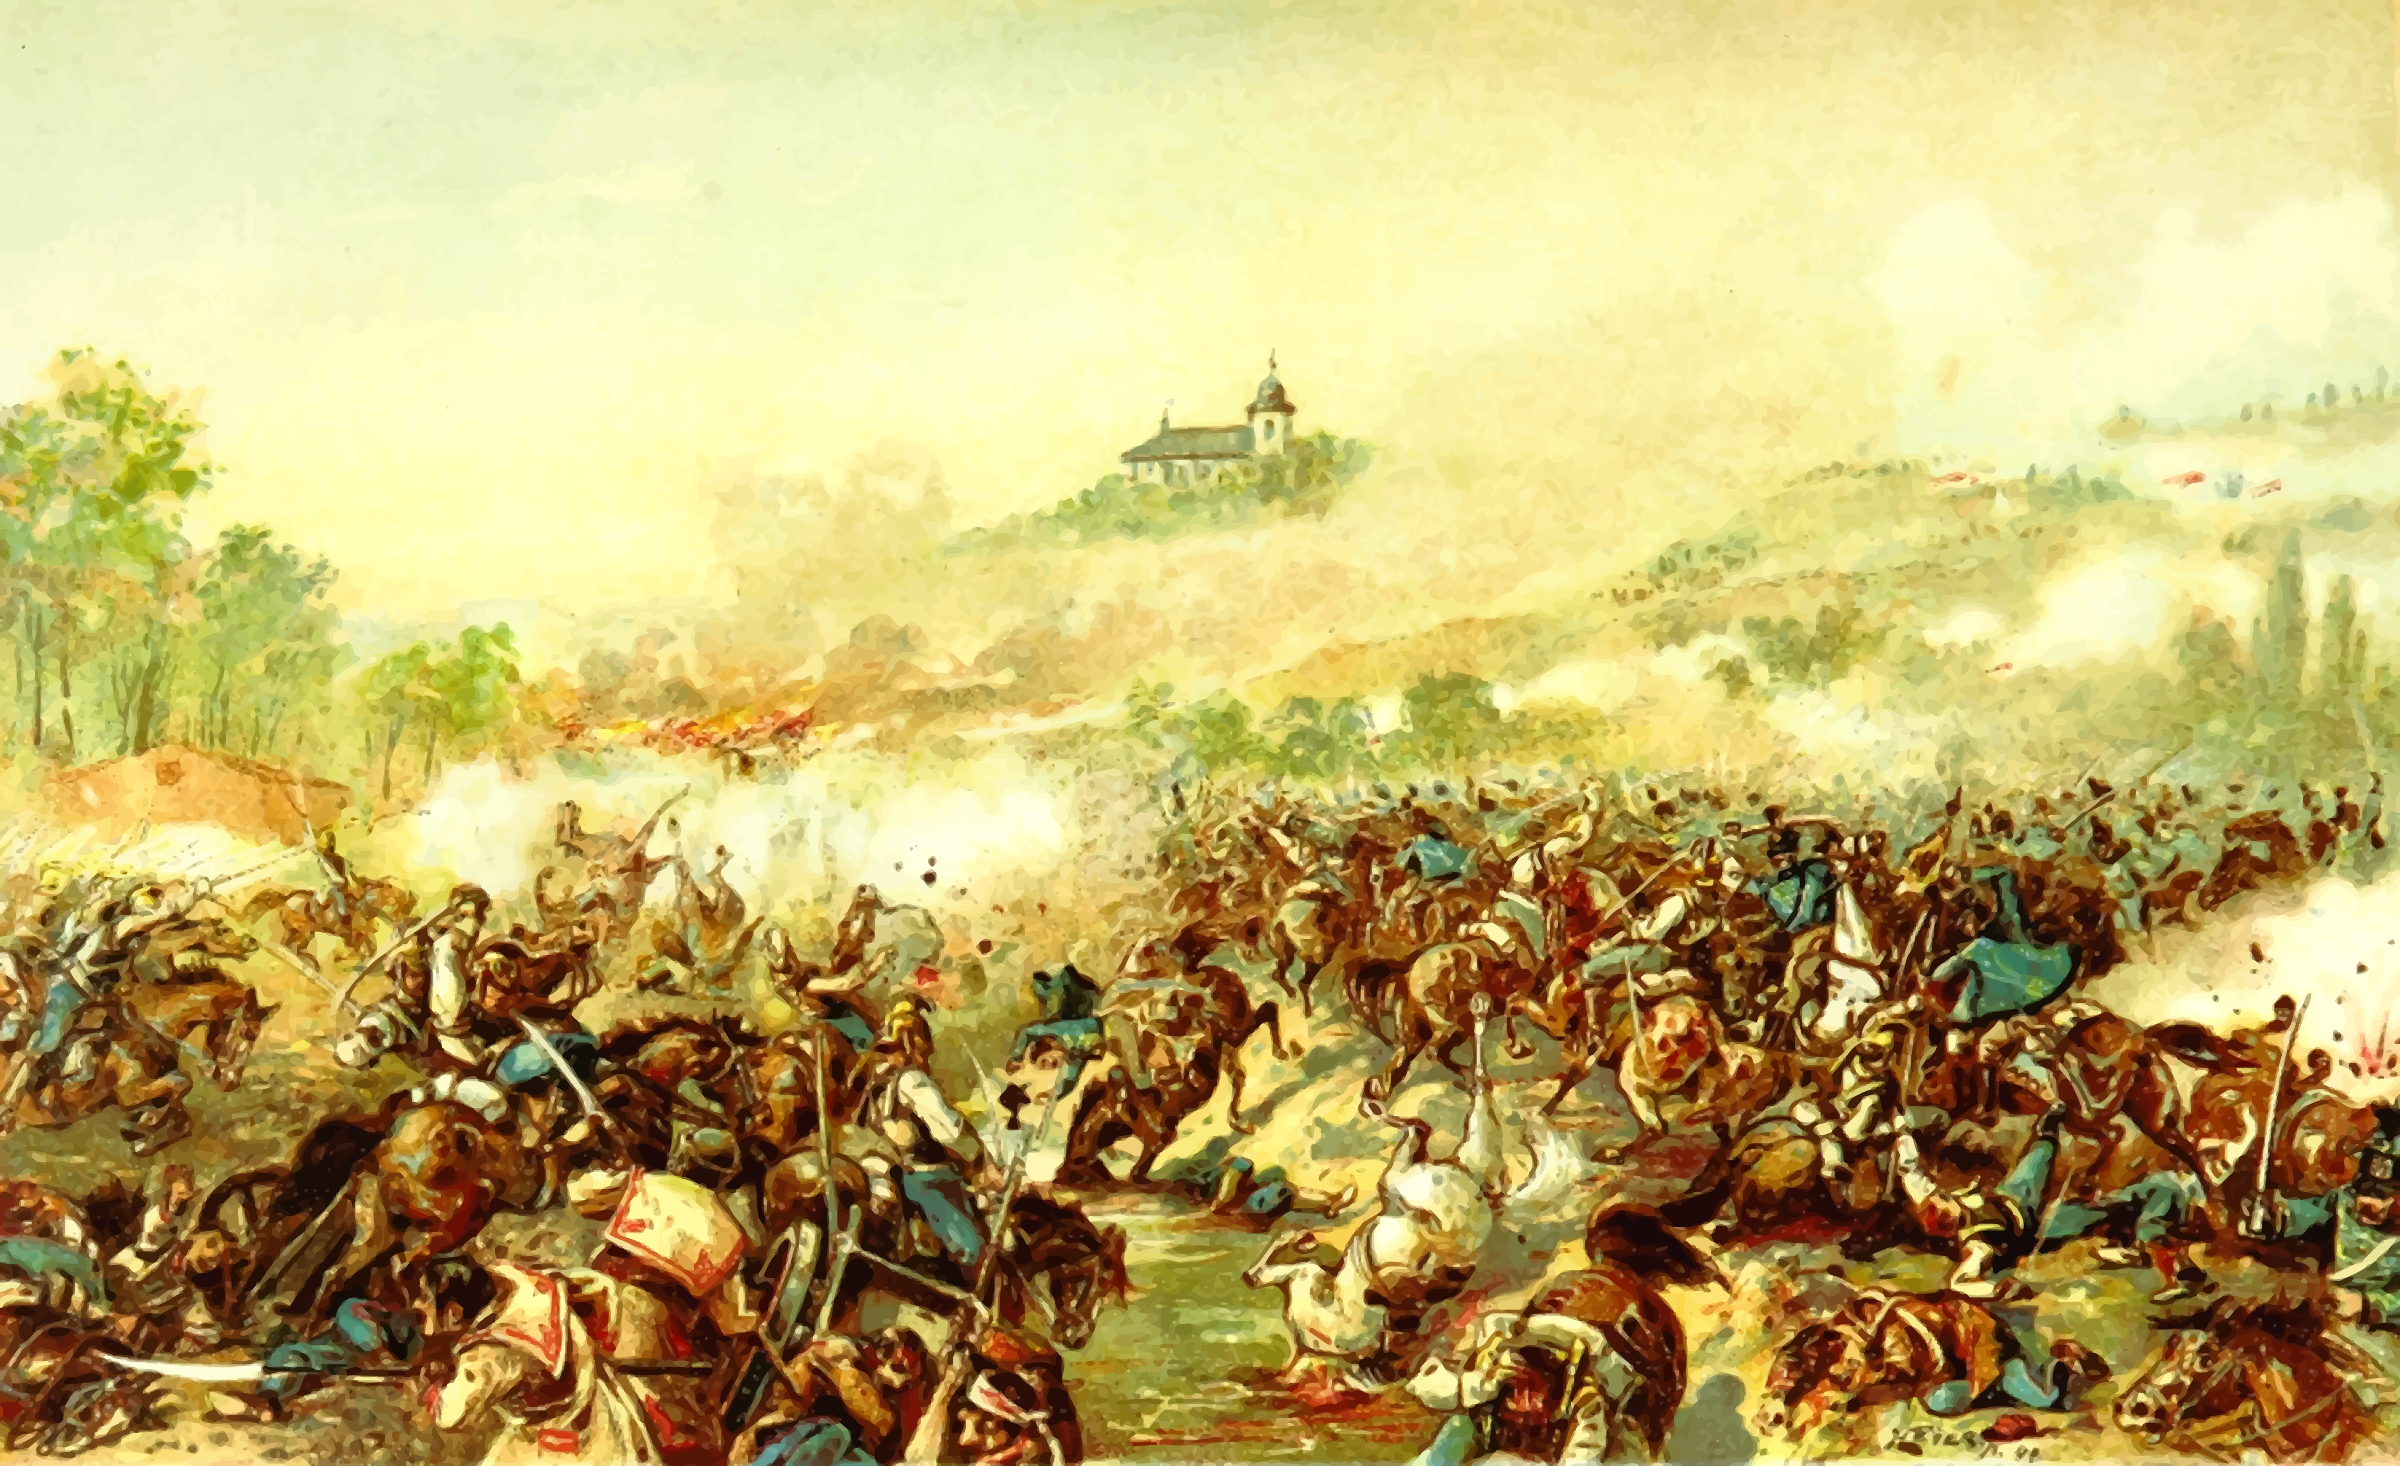 Battle of Isaszeg by Firkin